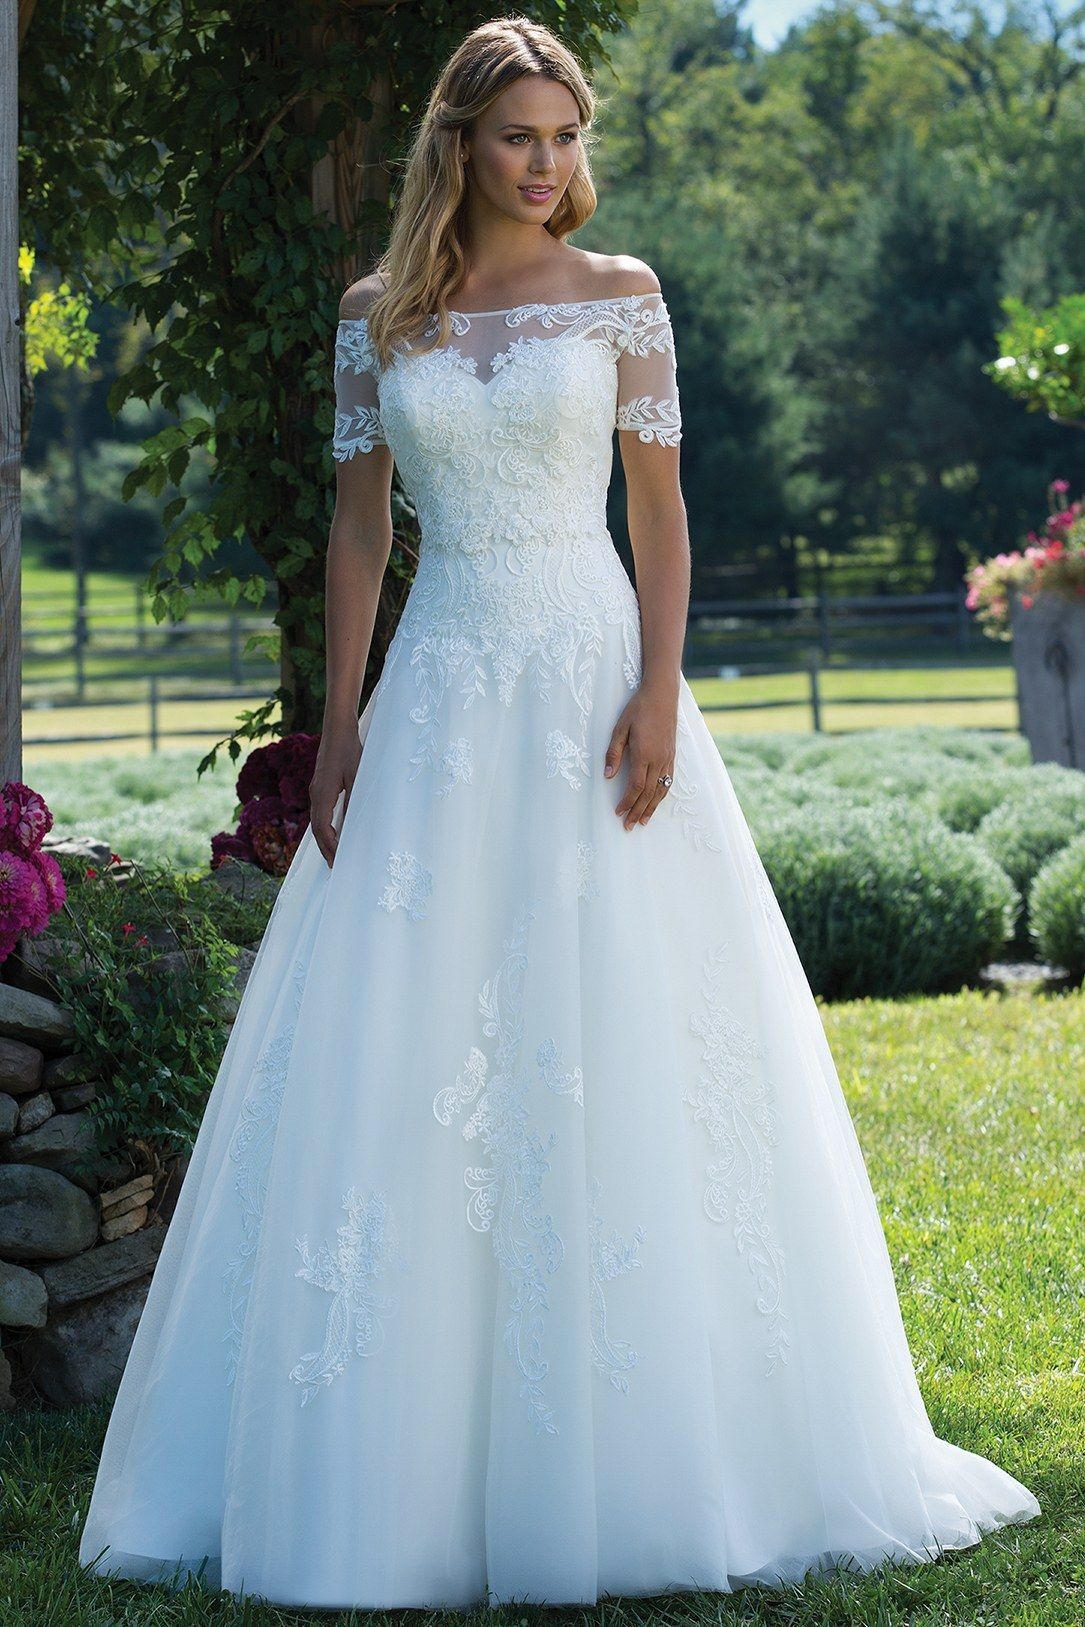 A corseted sweetheart wedding ball gown with allover lace. The full ...